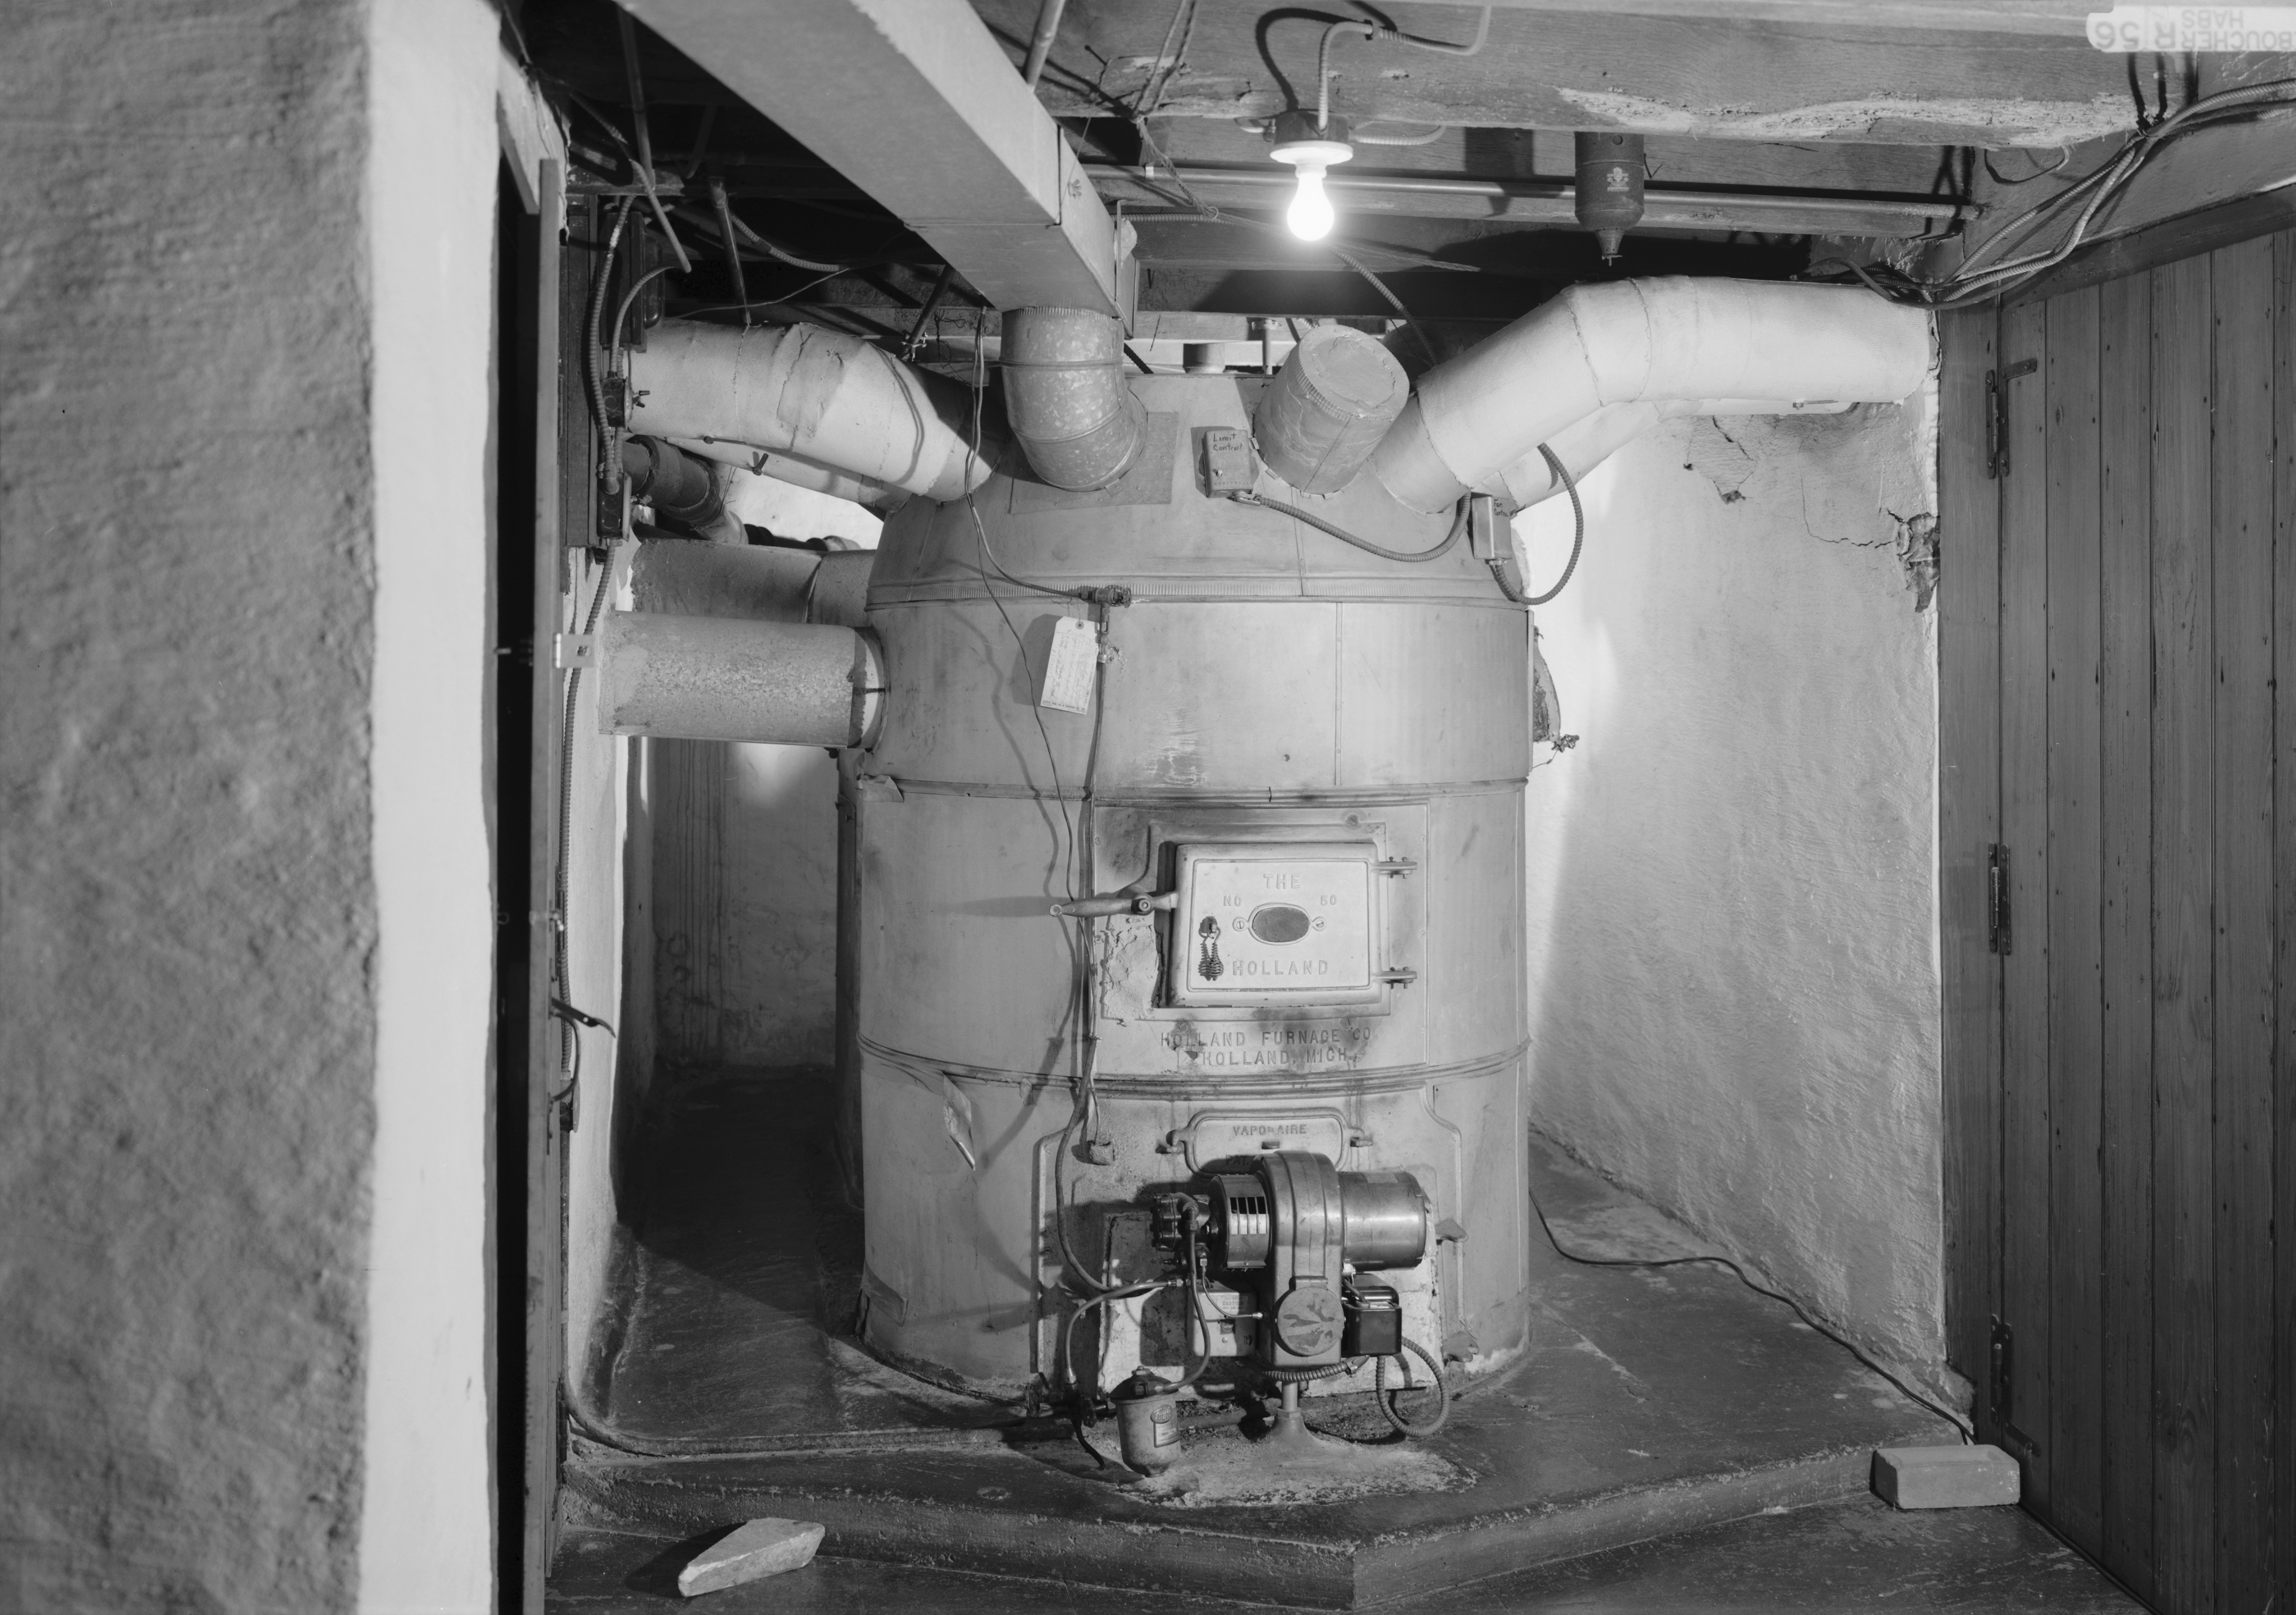 Heating A Basement With Forced Air